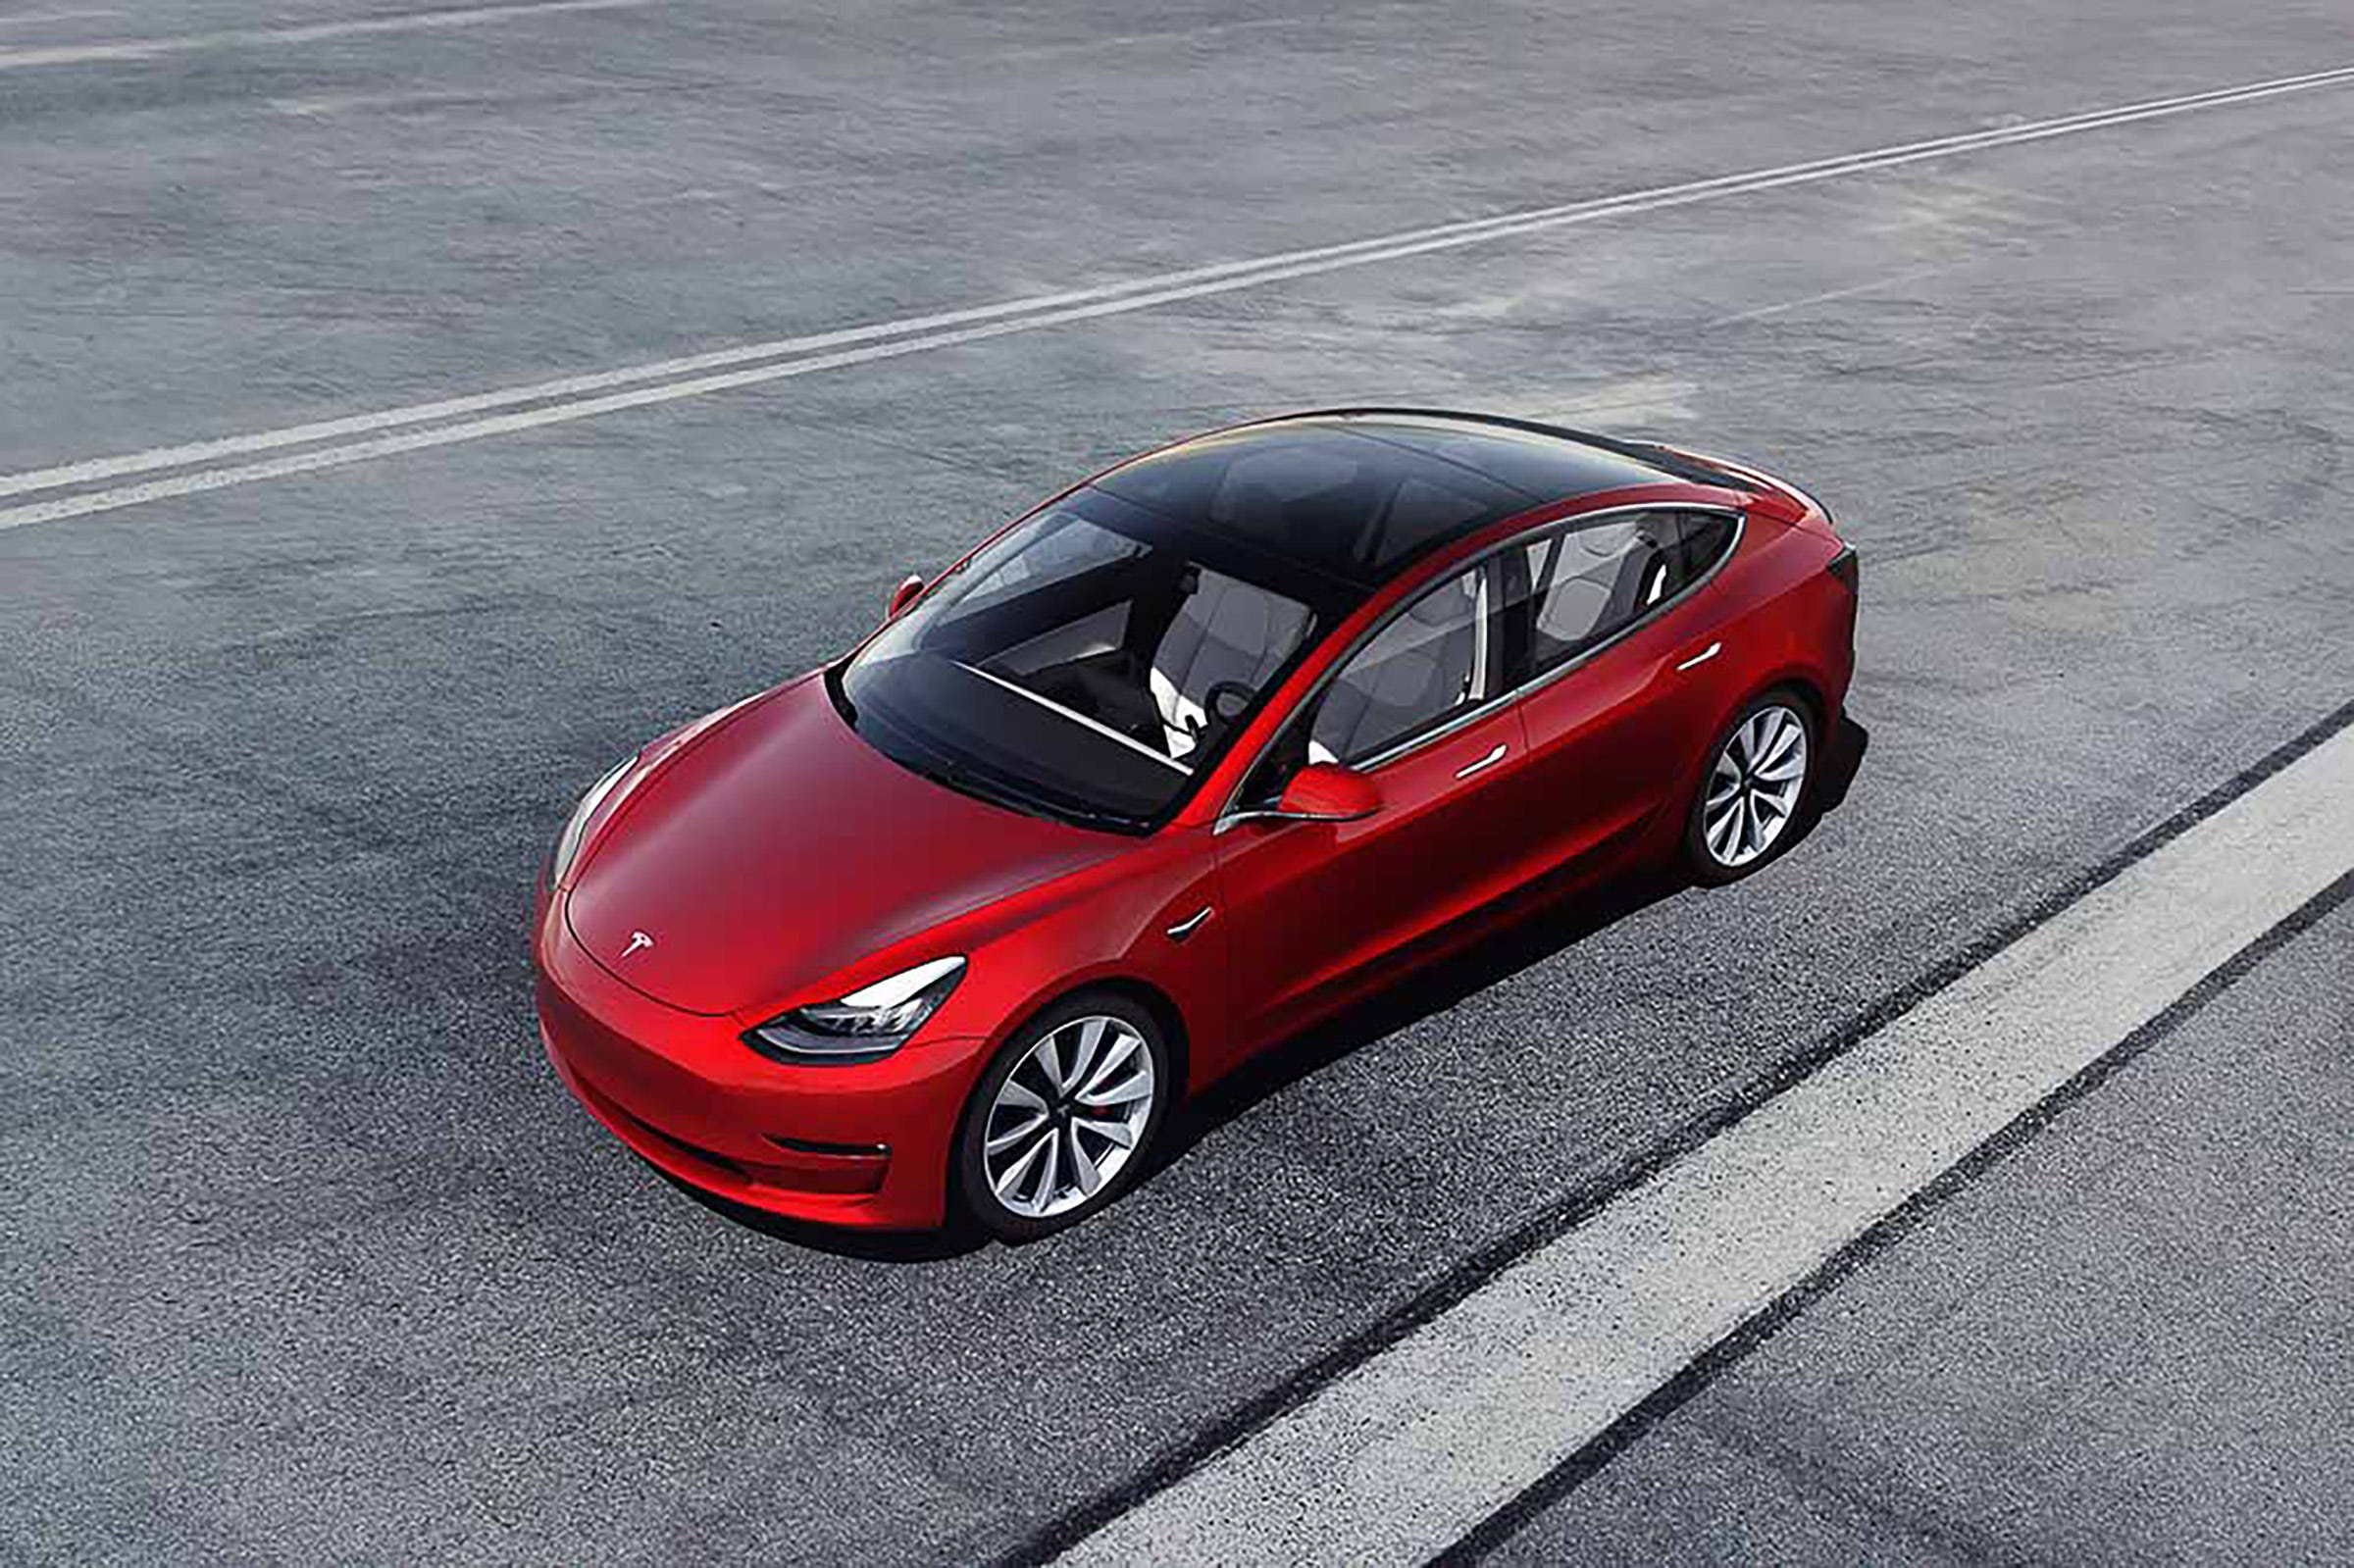 Tesla takes top 'American-Made' spot from Ford in Cars.com list